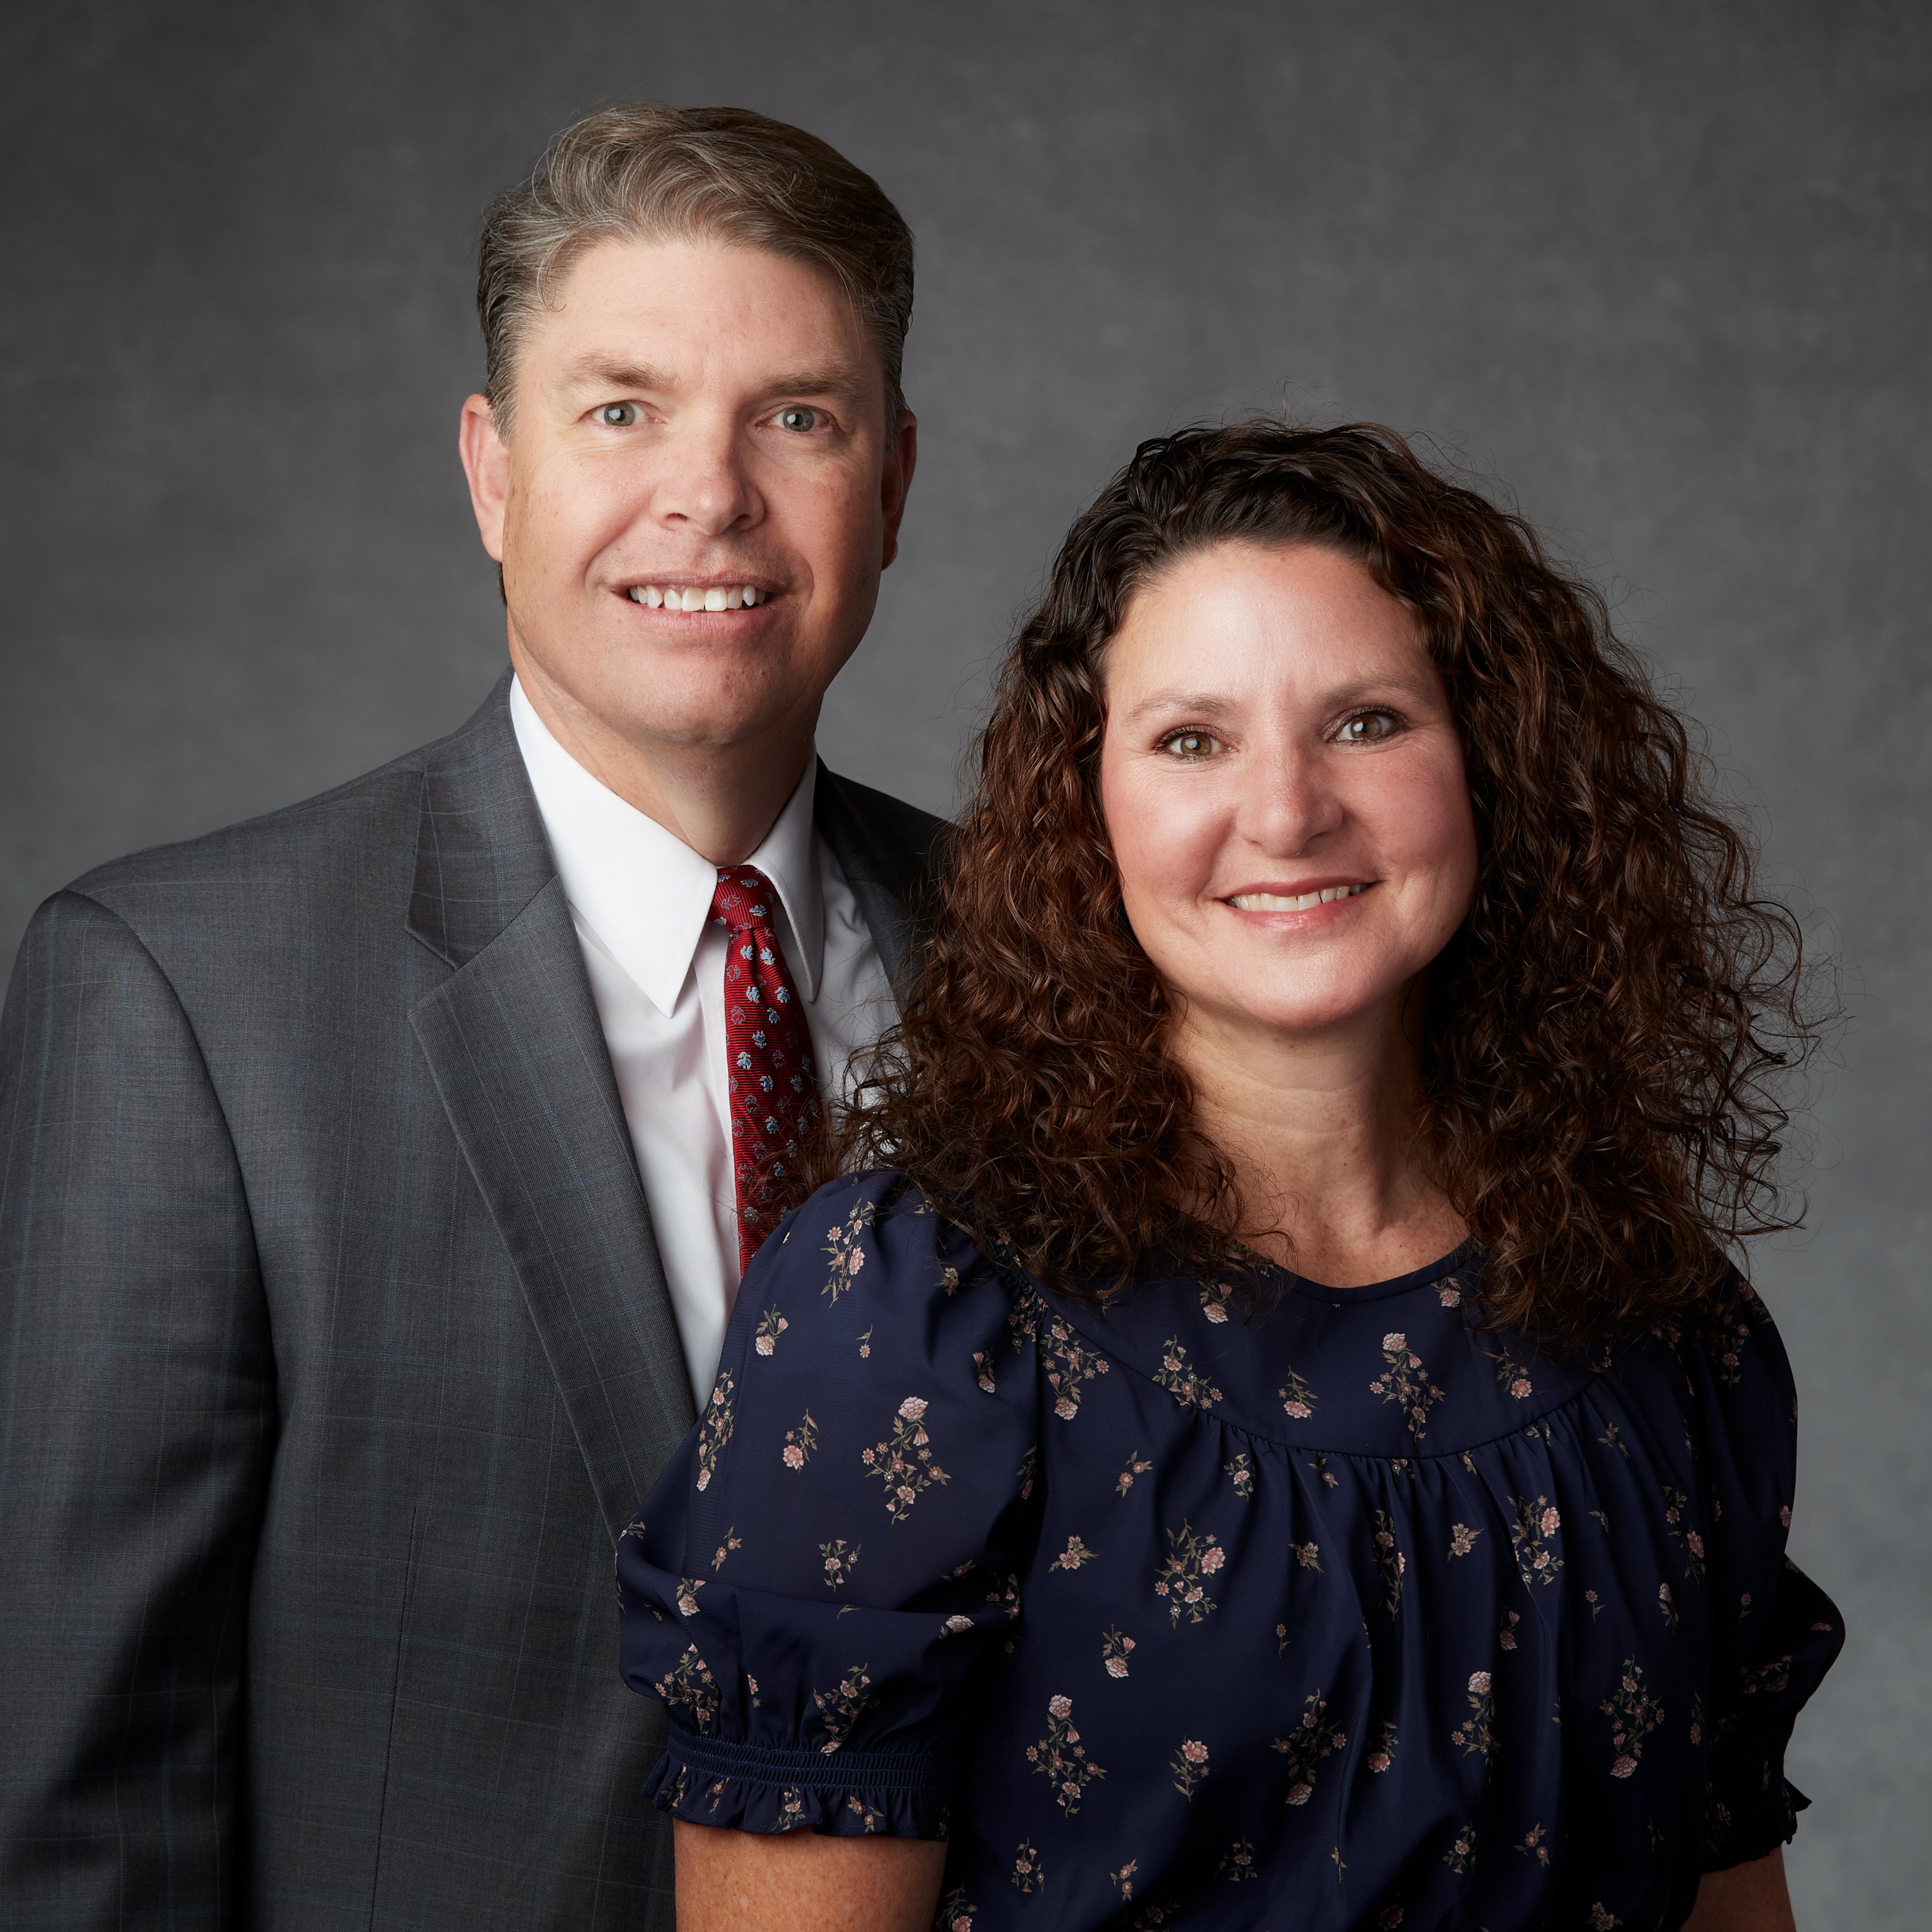 Timothy R. Cottrell and SanDee K. Cottrell